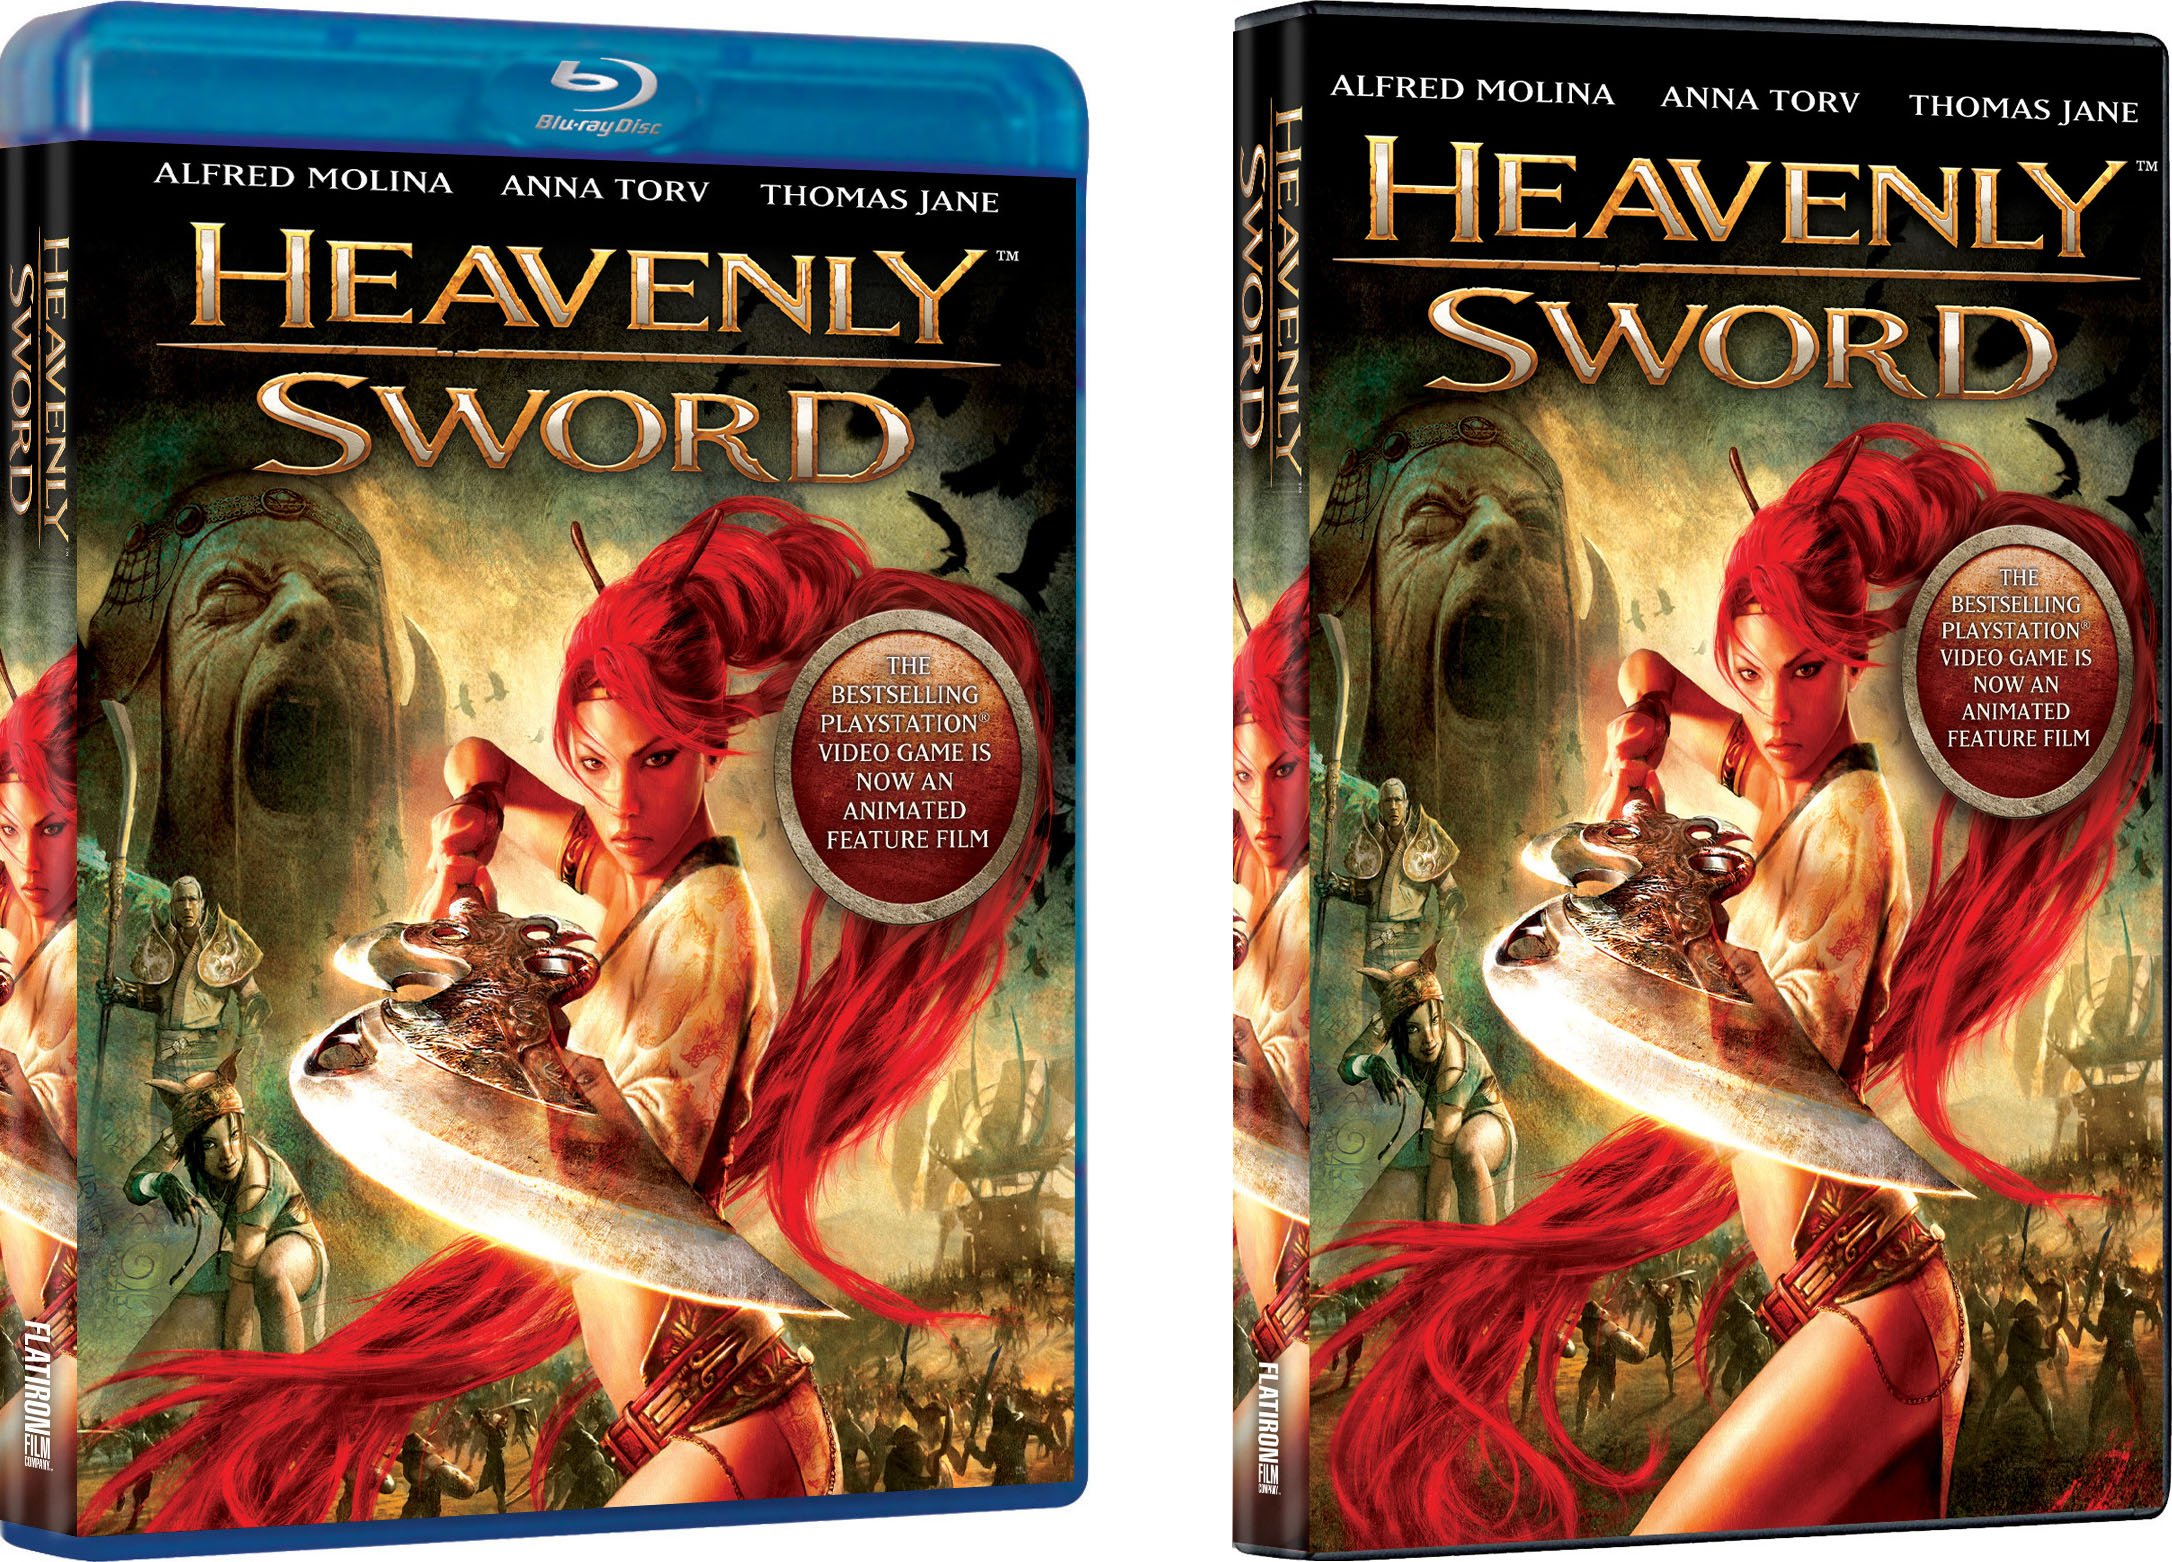 file_8579_heavenly-sword-br-dvd-img